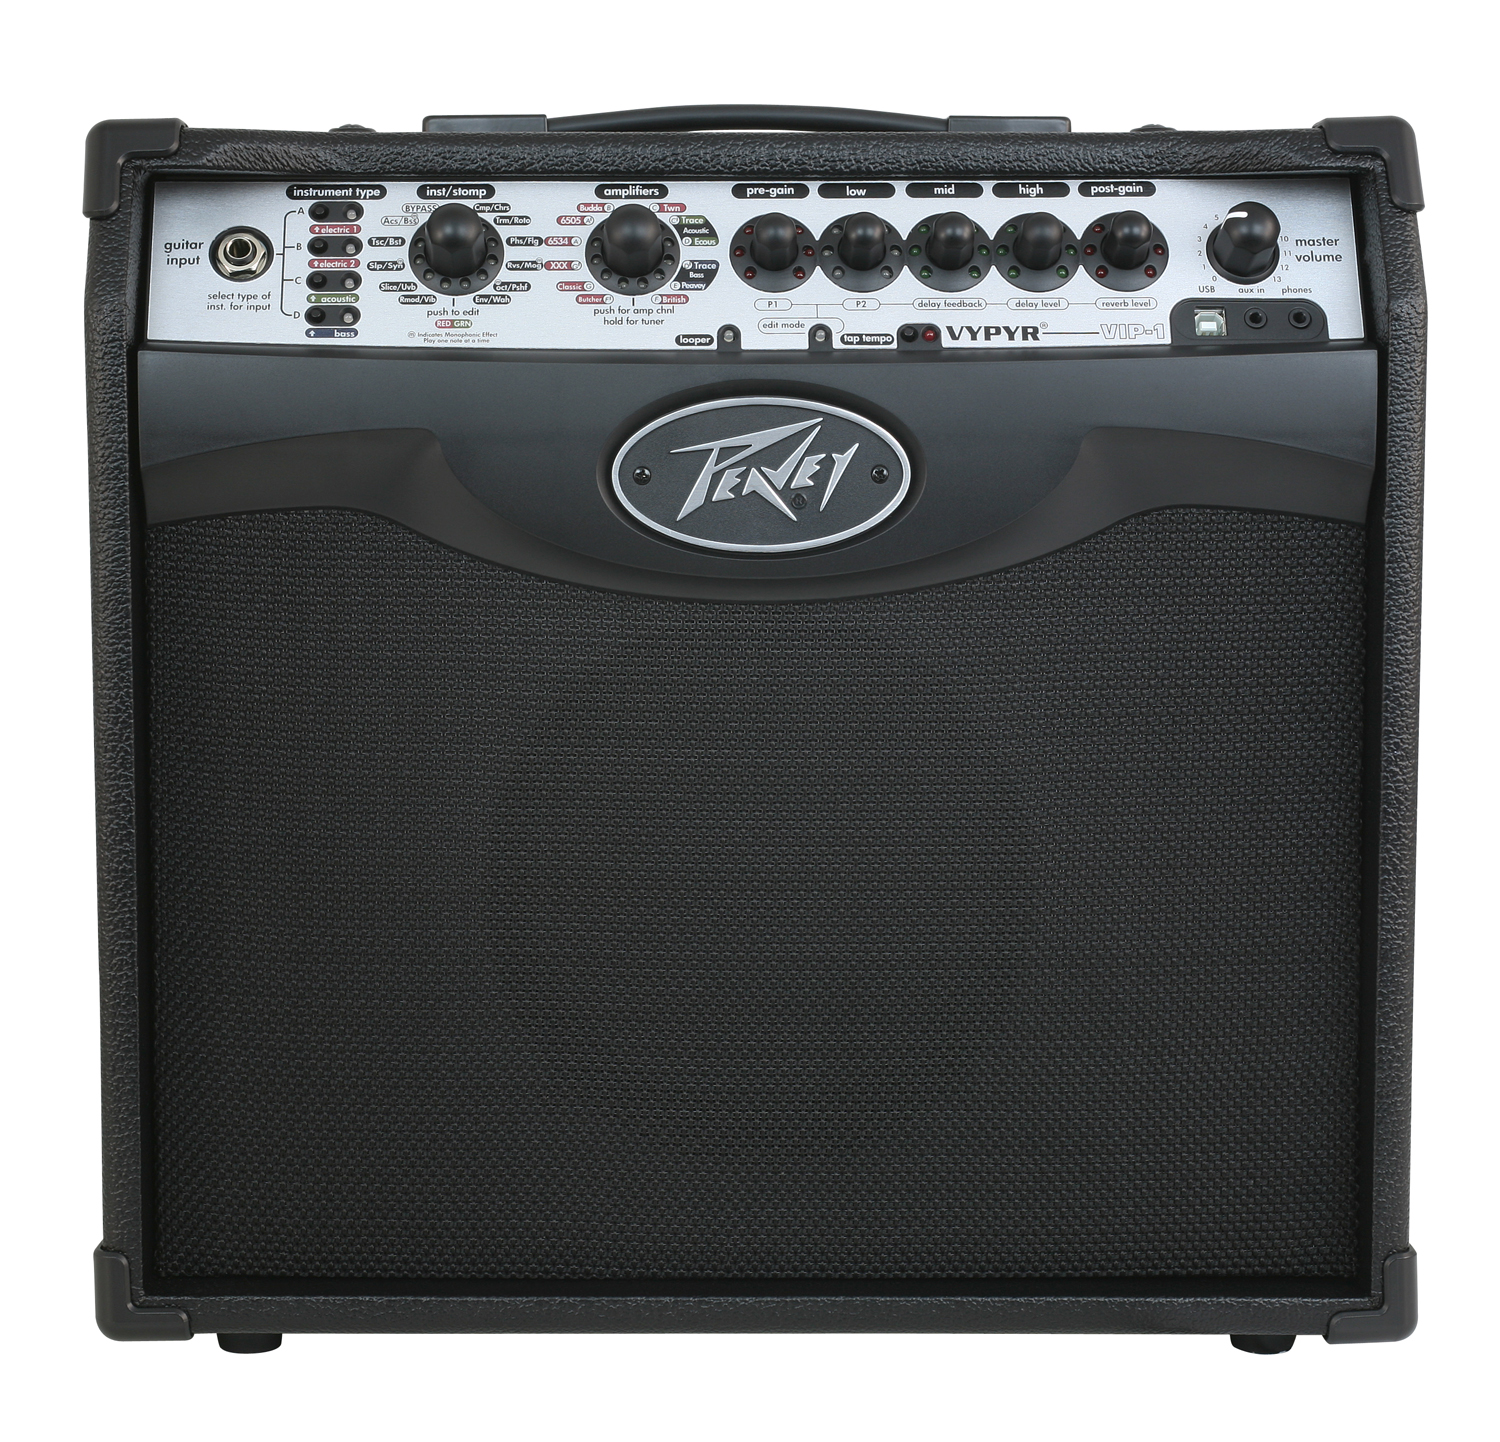 peavey vypyr vip 1 guitar amplifier w acoustic bass guitar simulation 3608060 pev13 3608060. Black Bedroom Furniture Sets. Home Design Ideas